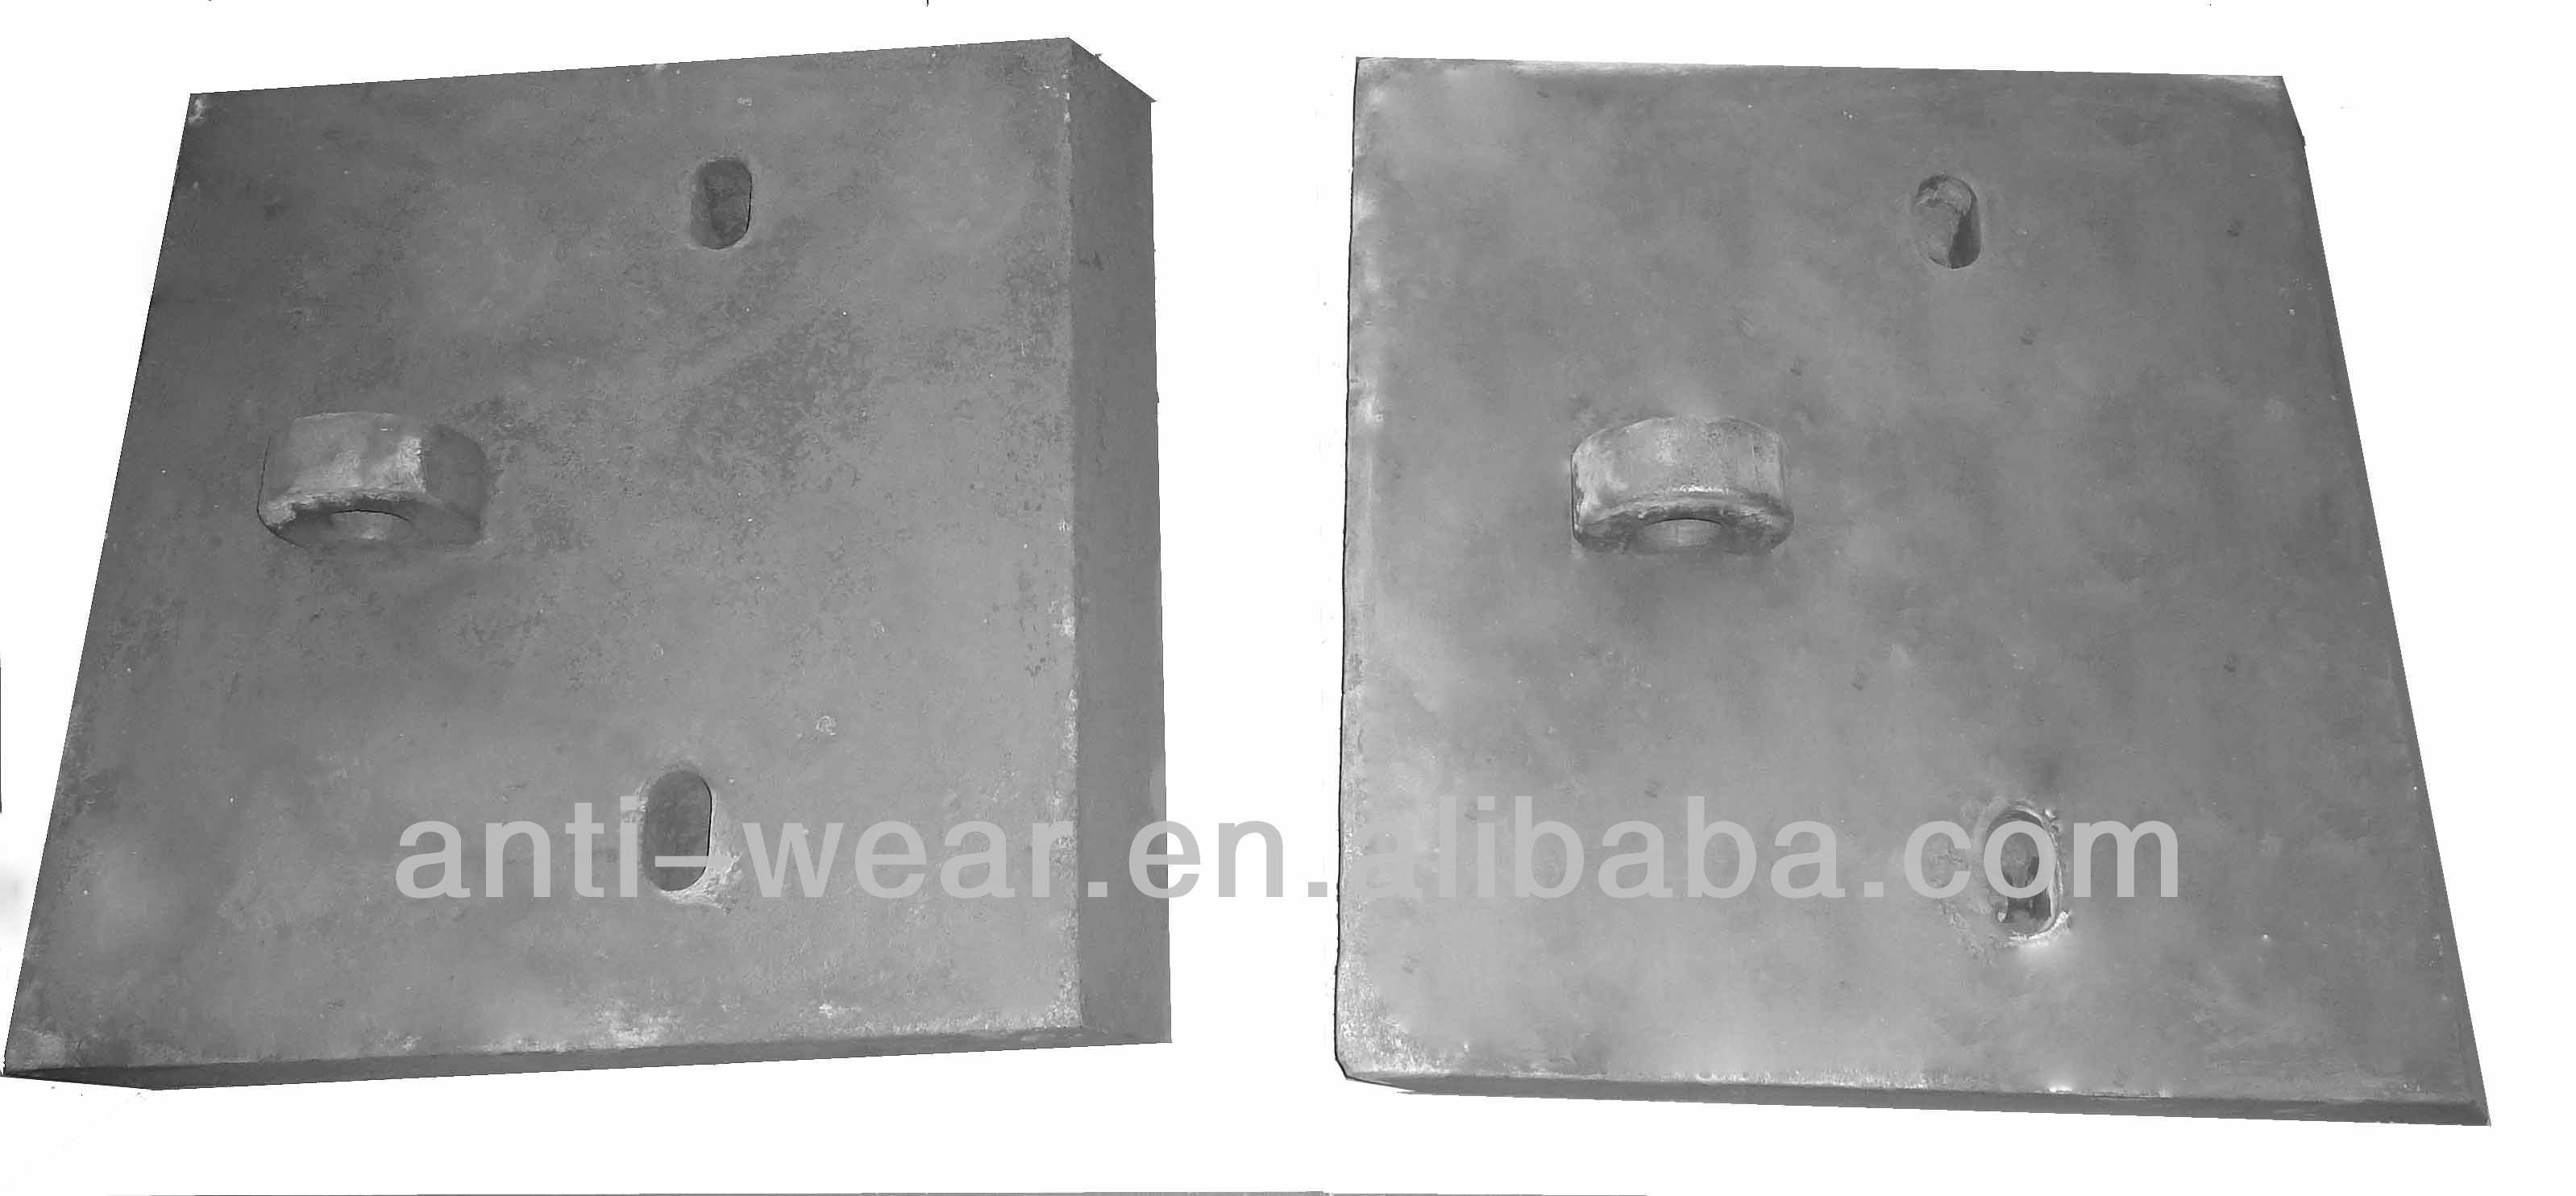 Cr18 Feed Chute Liner Castings with Hardness More Than HRC57